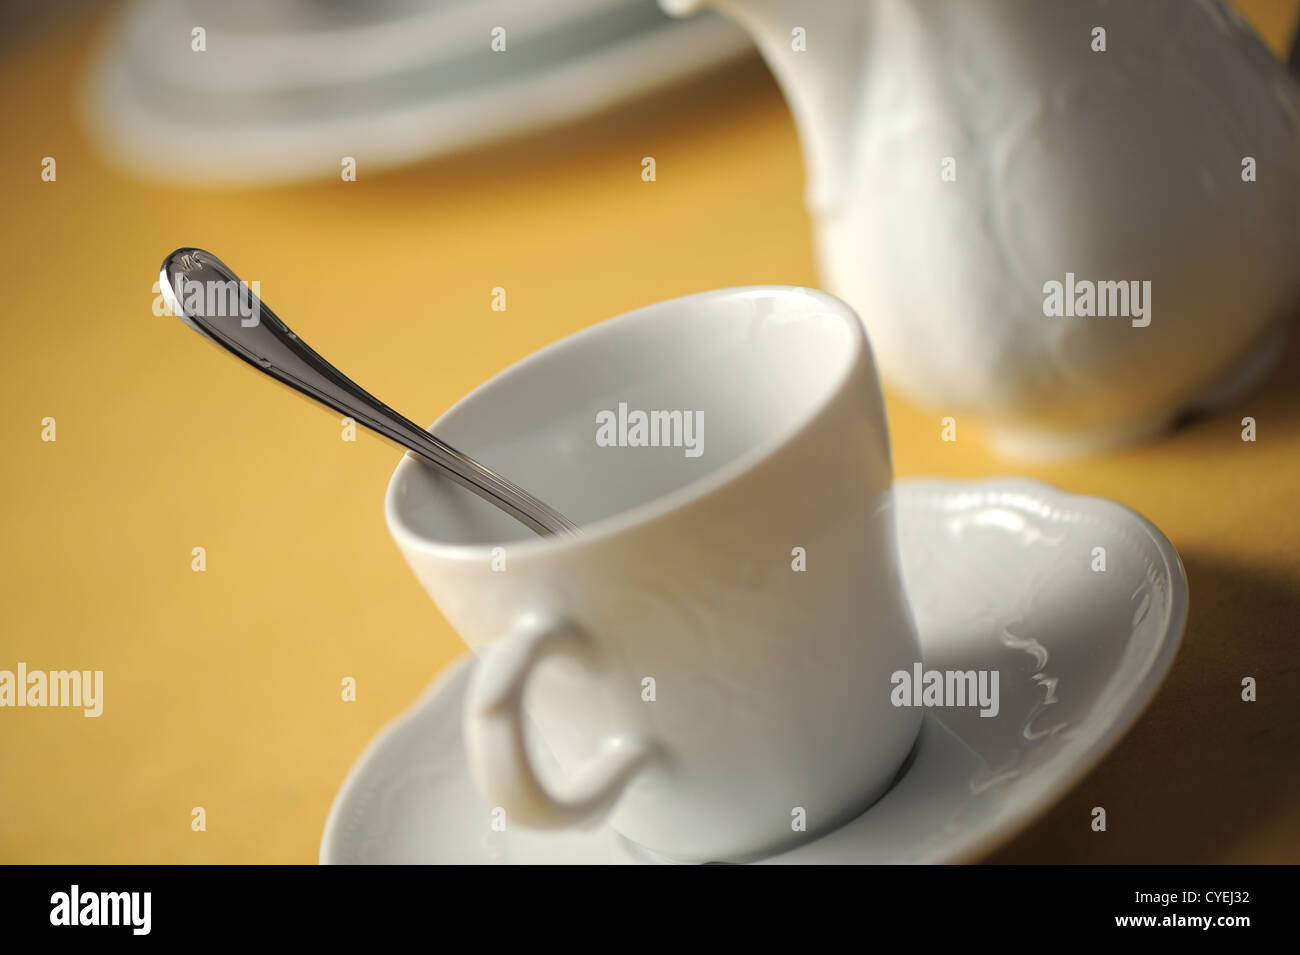 cup on table, close up, shallow dof - Stock Image